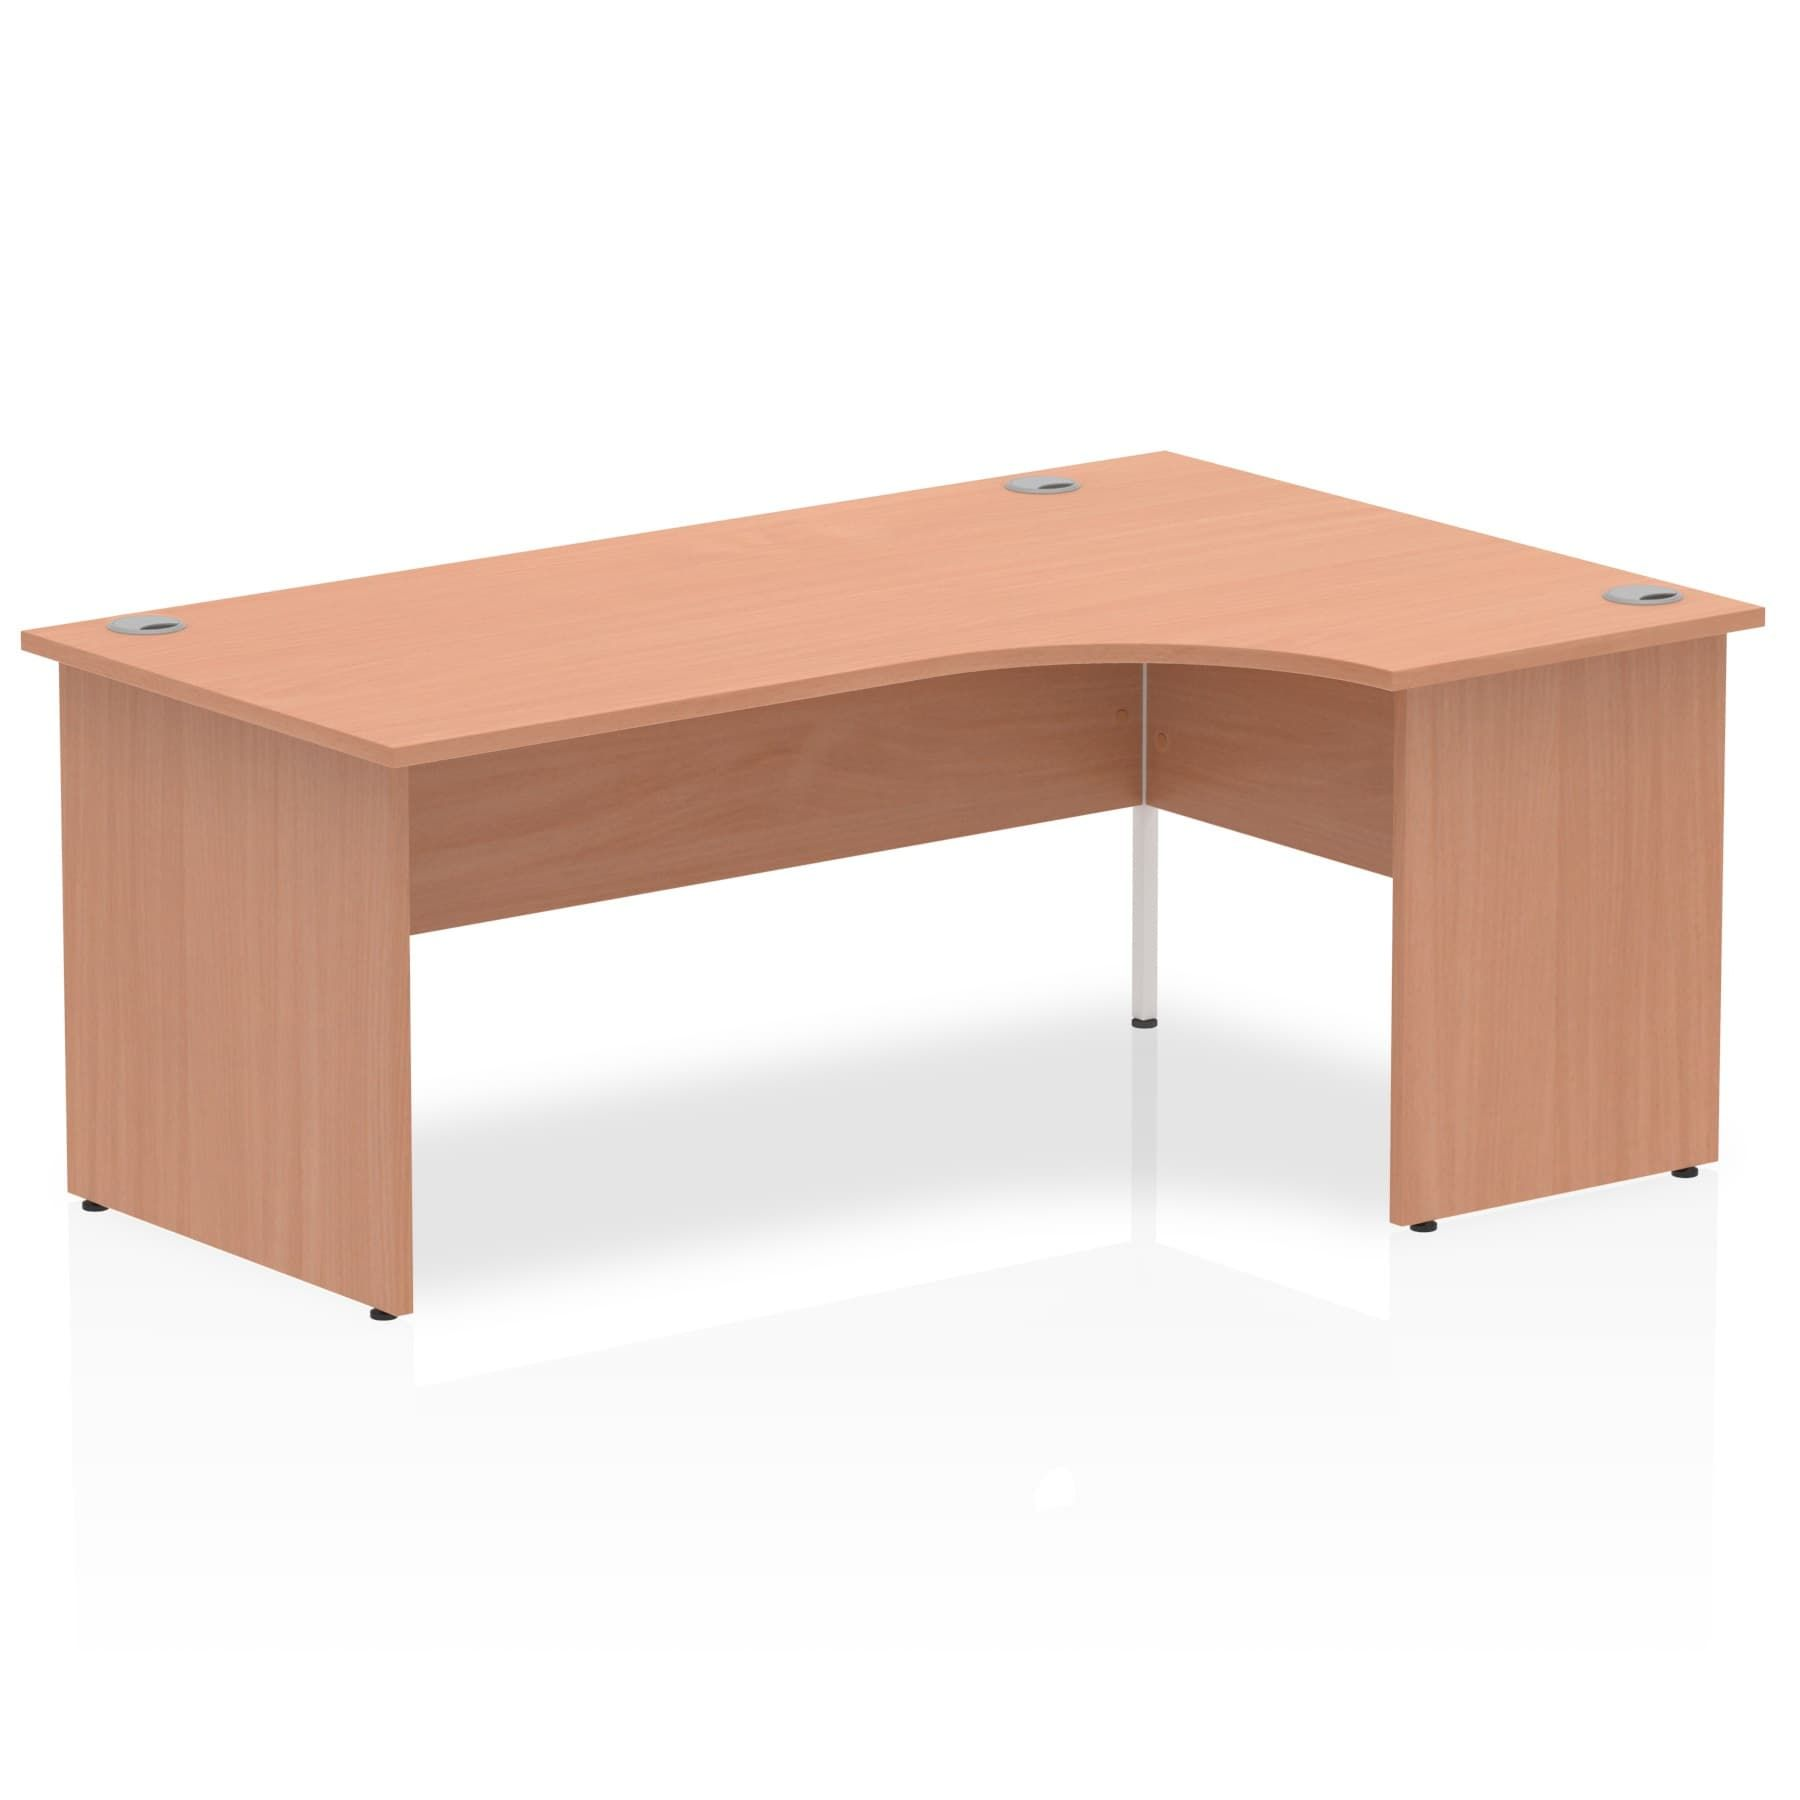 Impulse 1800 Right Hand Crescent Desk with Panel Leg